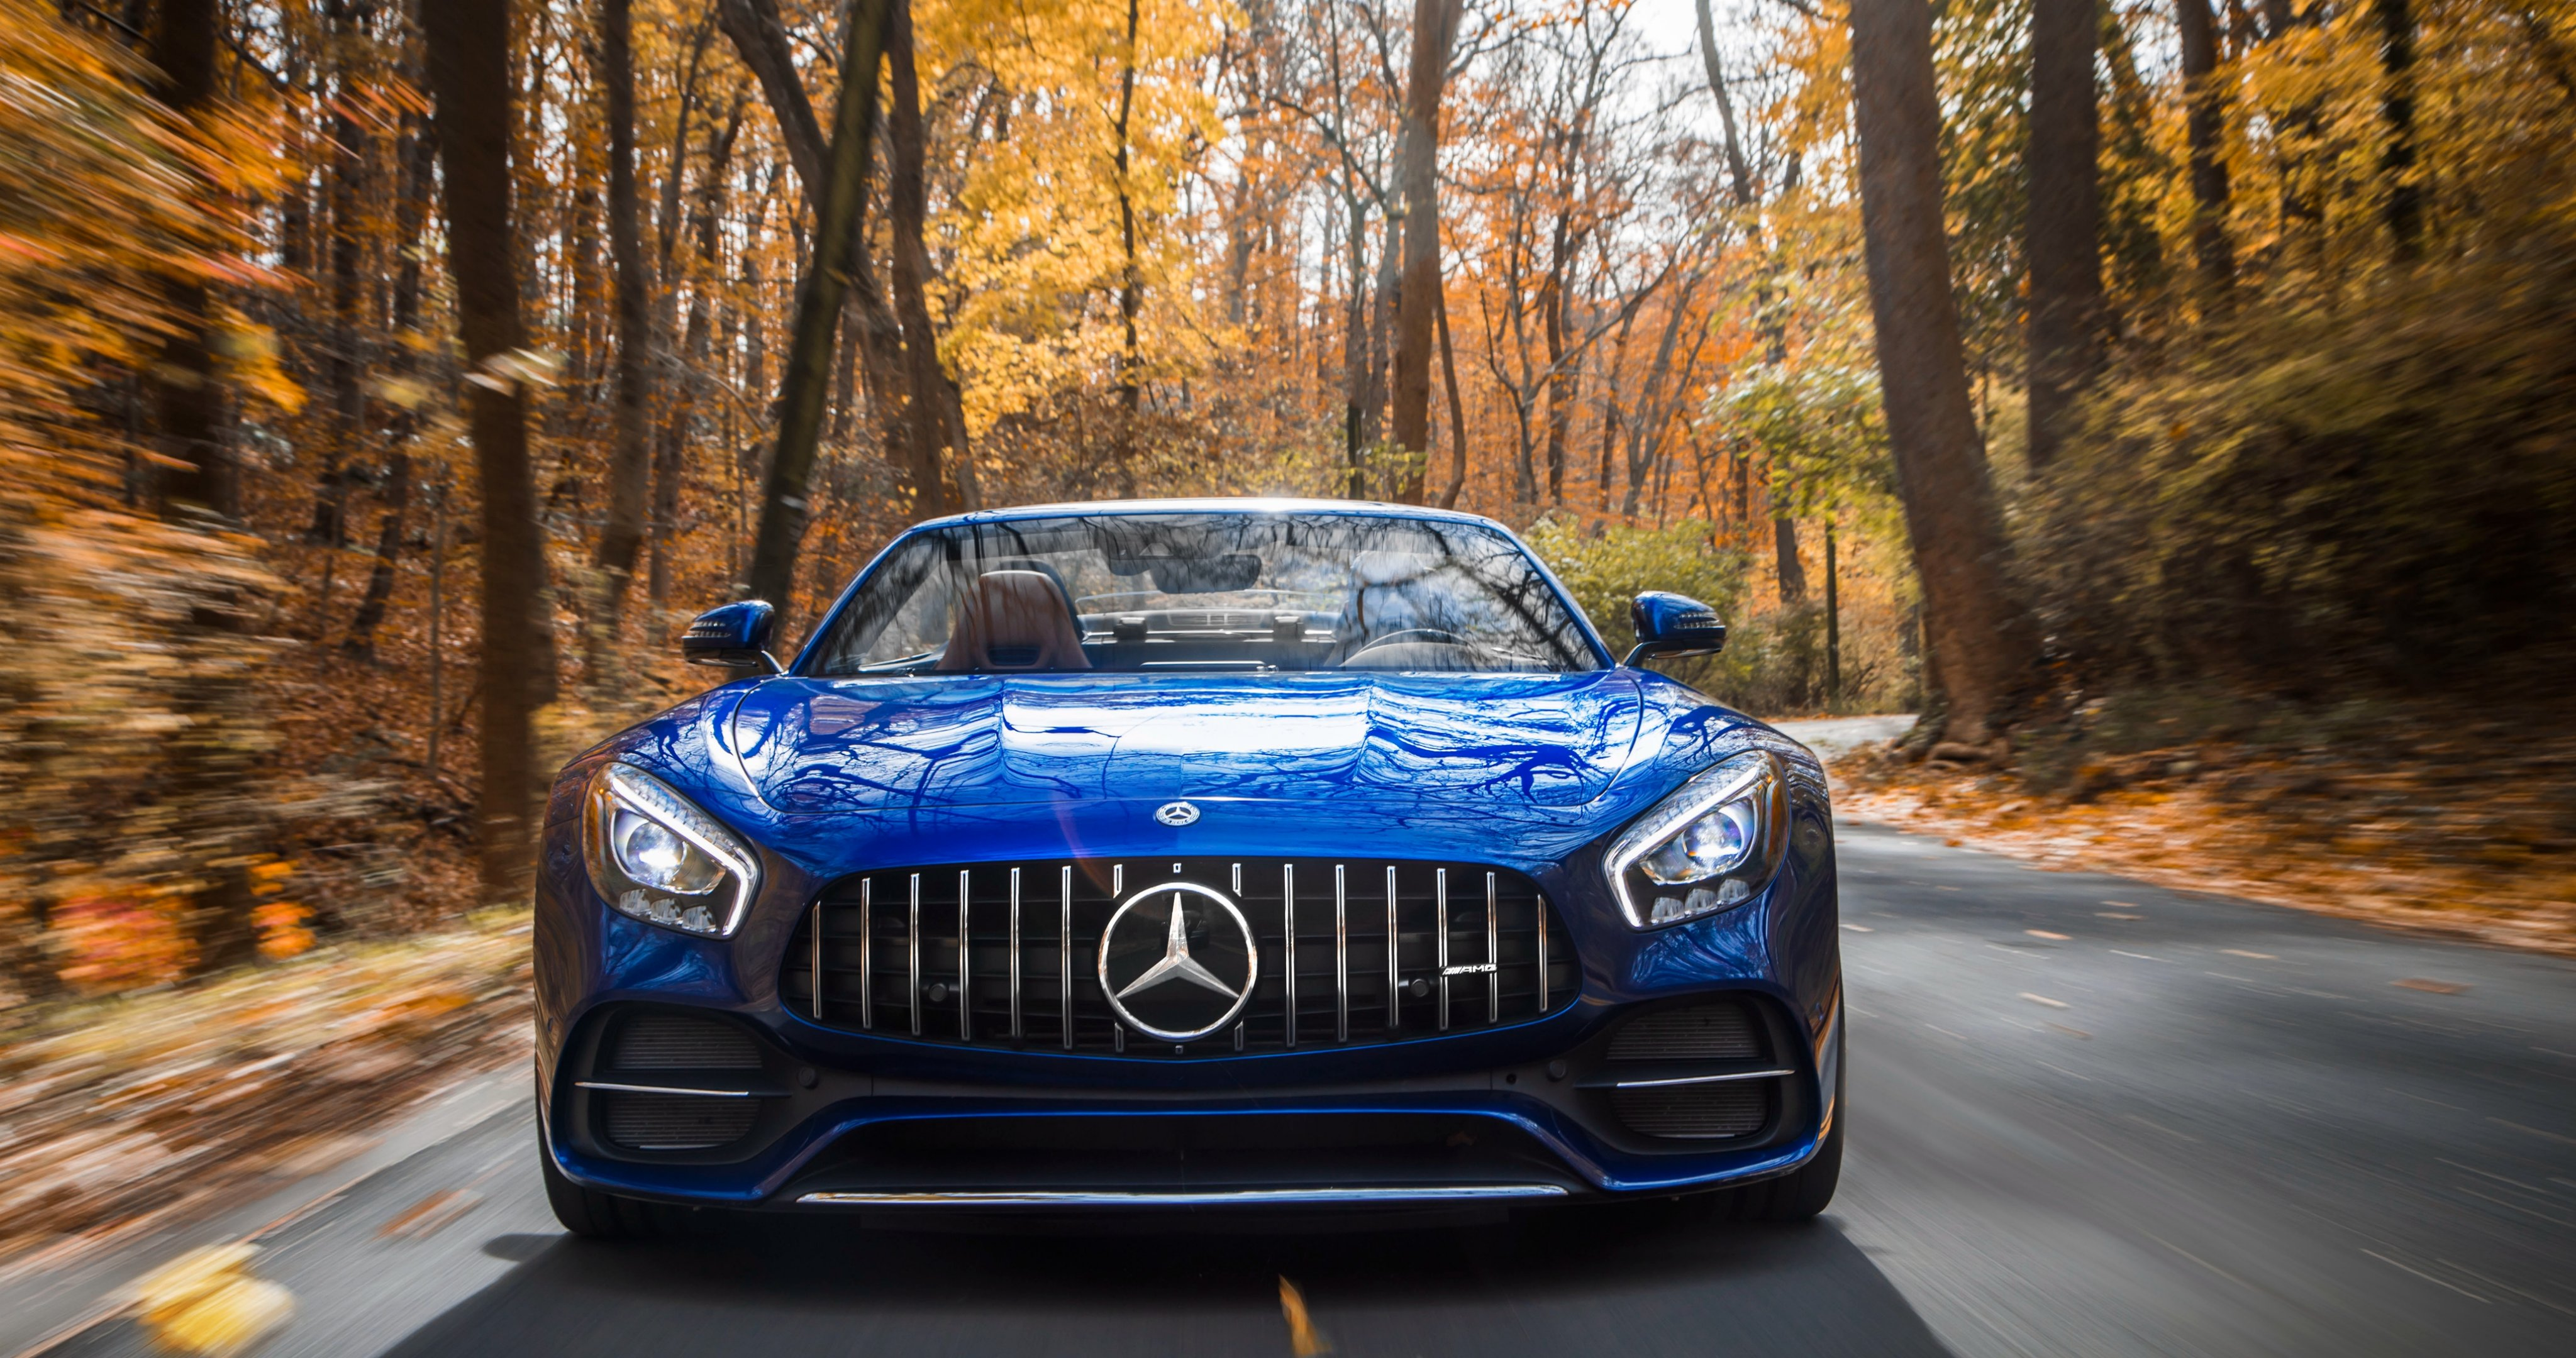 Luxury Car Wallpaper posted by Sarah ...